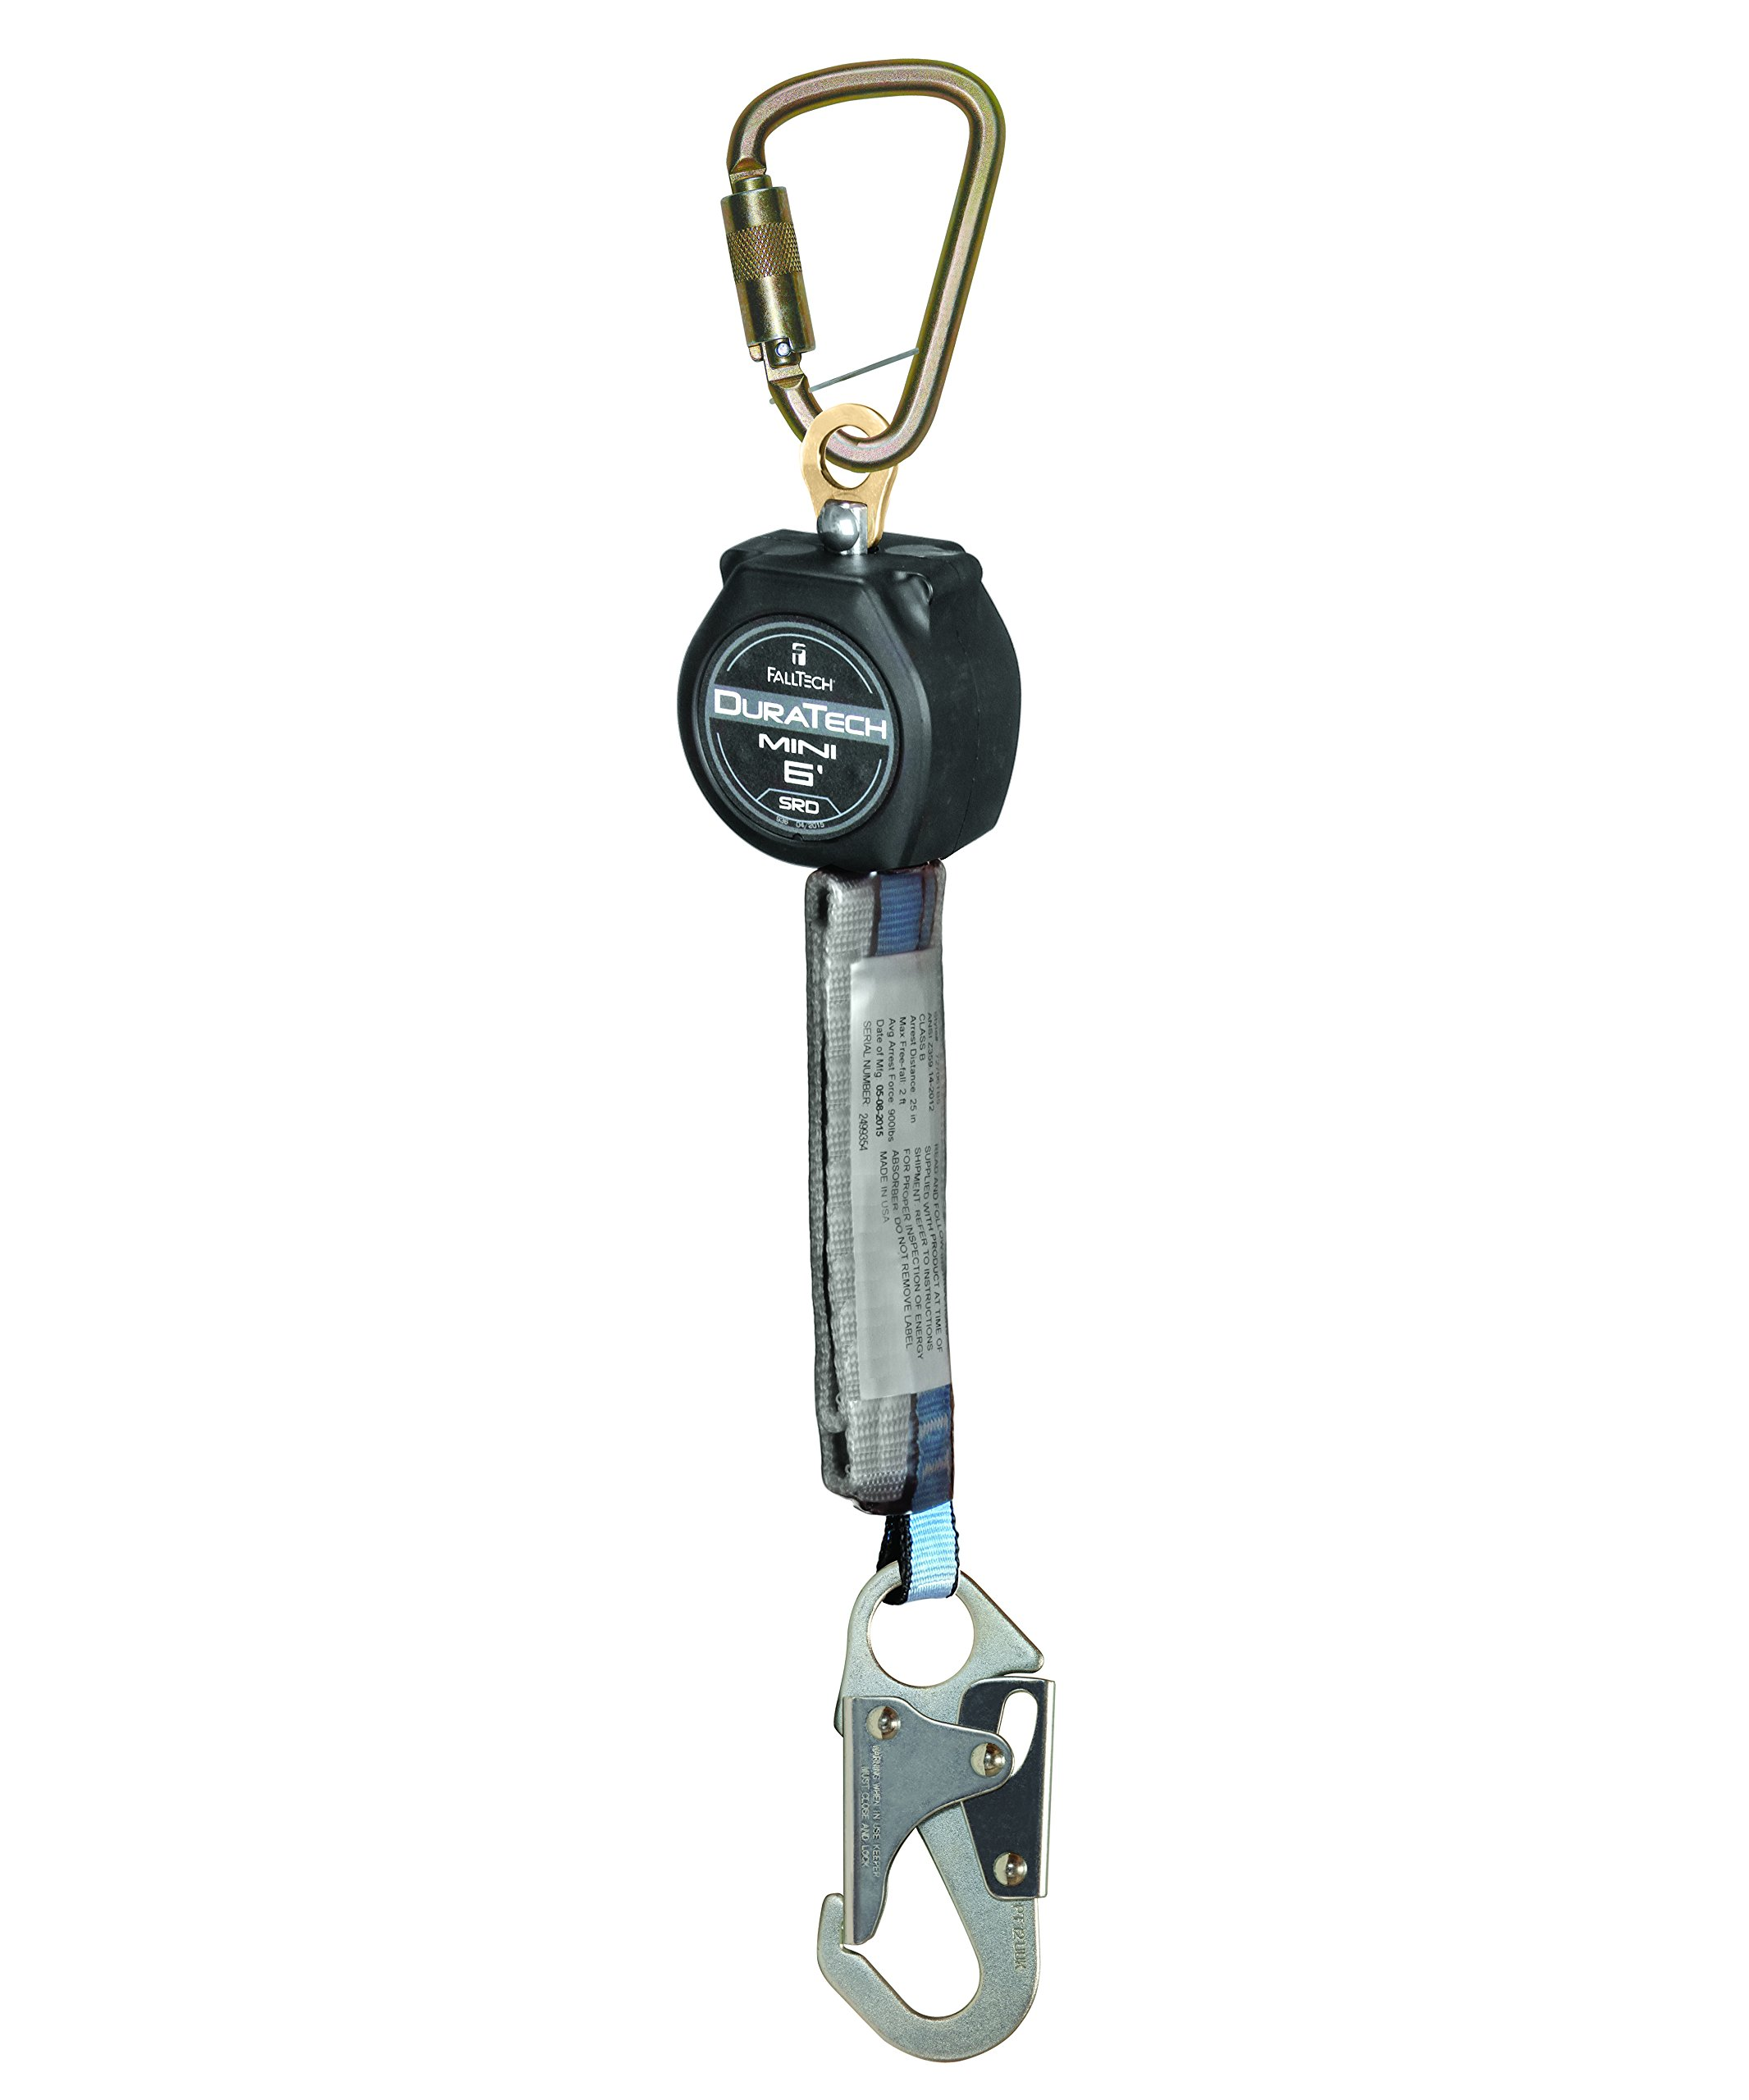 FallTech 72706SB1 MINI DuraTech 6' Compact Web Self-retracting Lifeline - 6' Mini SRD Single-Leg Steel Carabiner and Steel Snap Hook, 6', Black